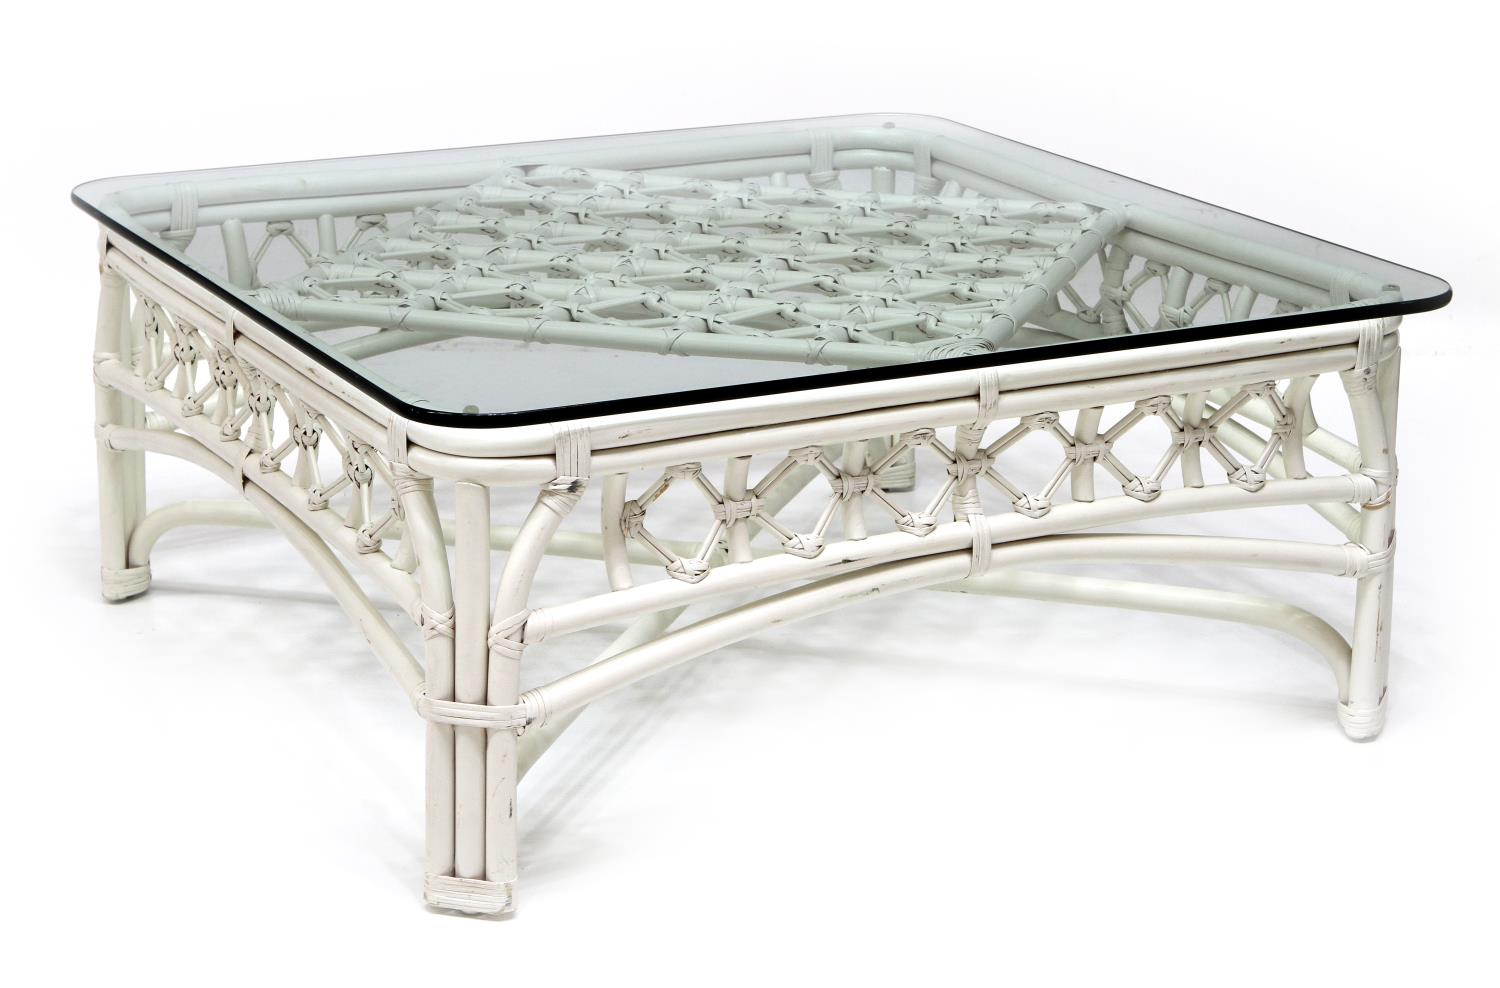 Bamboo Framed Glass Top Coffee Table July Mid Century Design Antiques Estates Auction